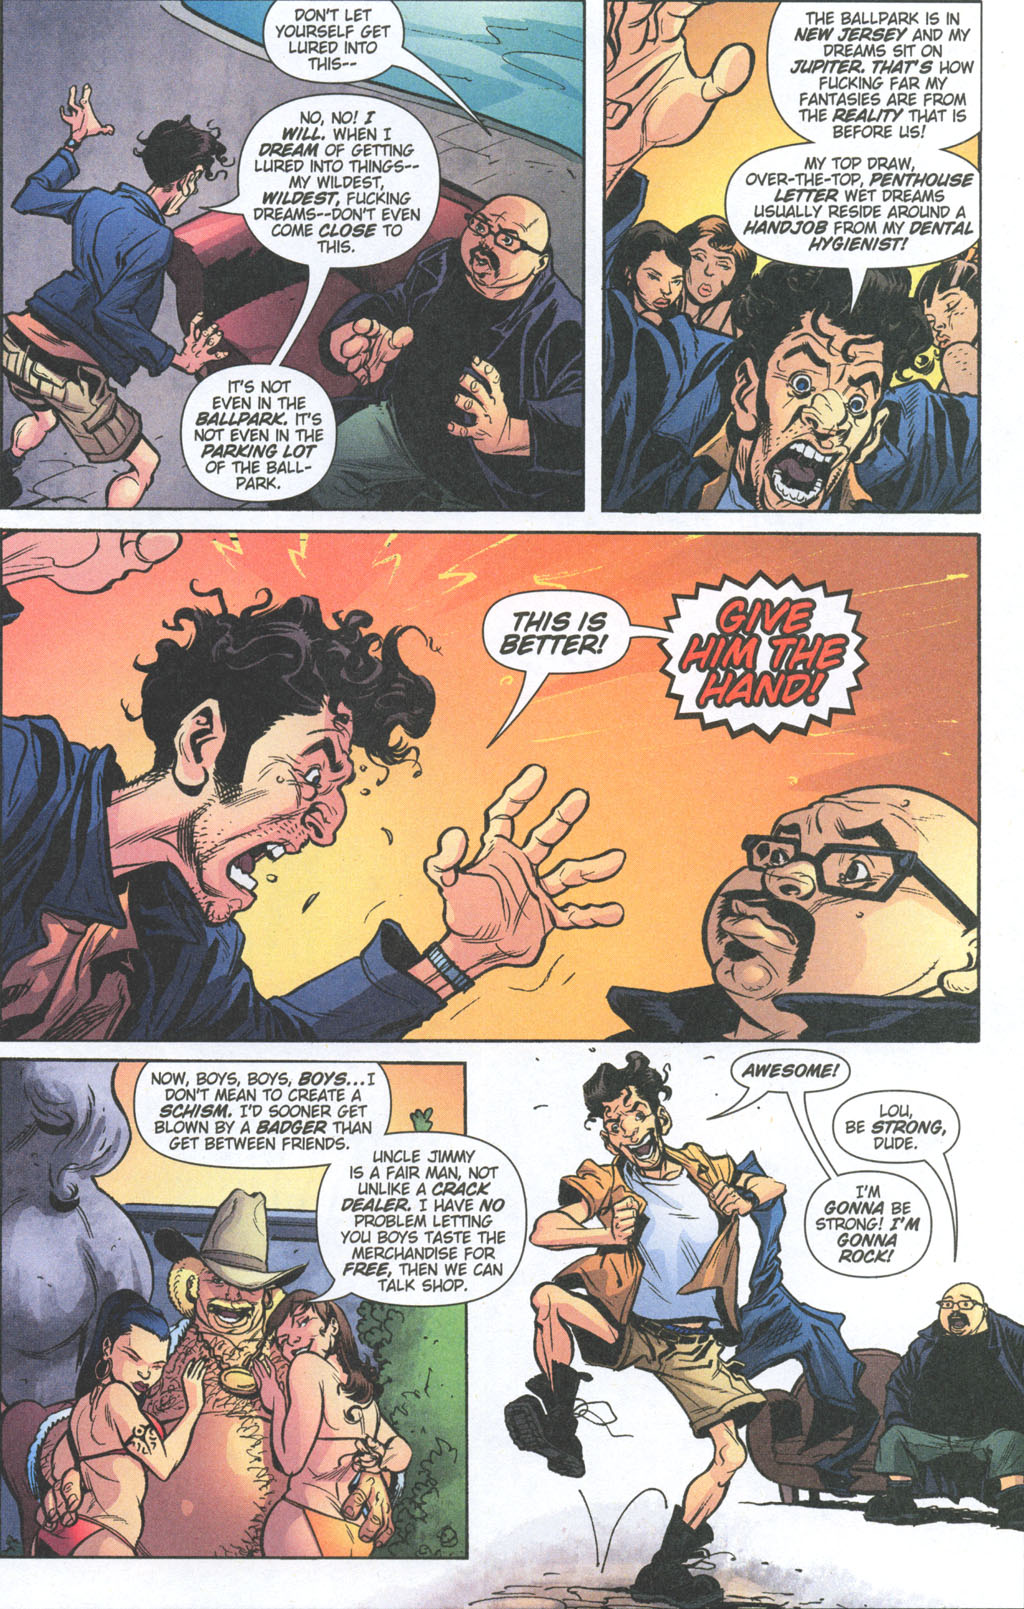 Read online Caper comic -  Issue #11 - 17